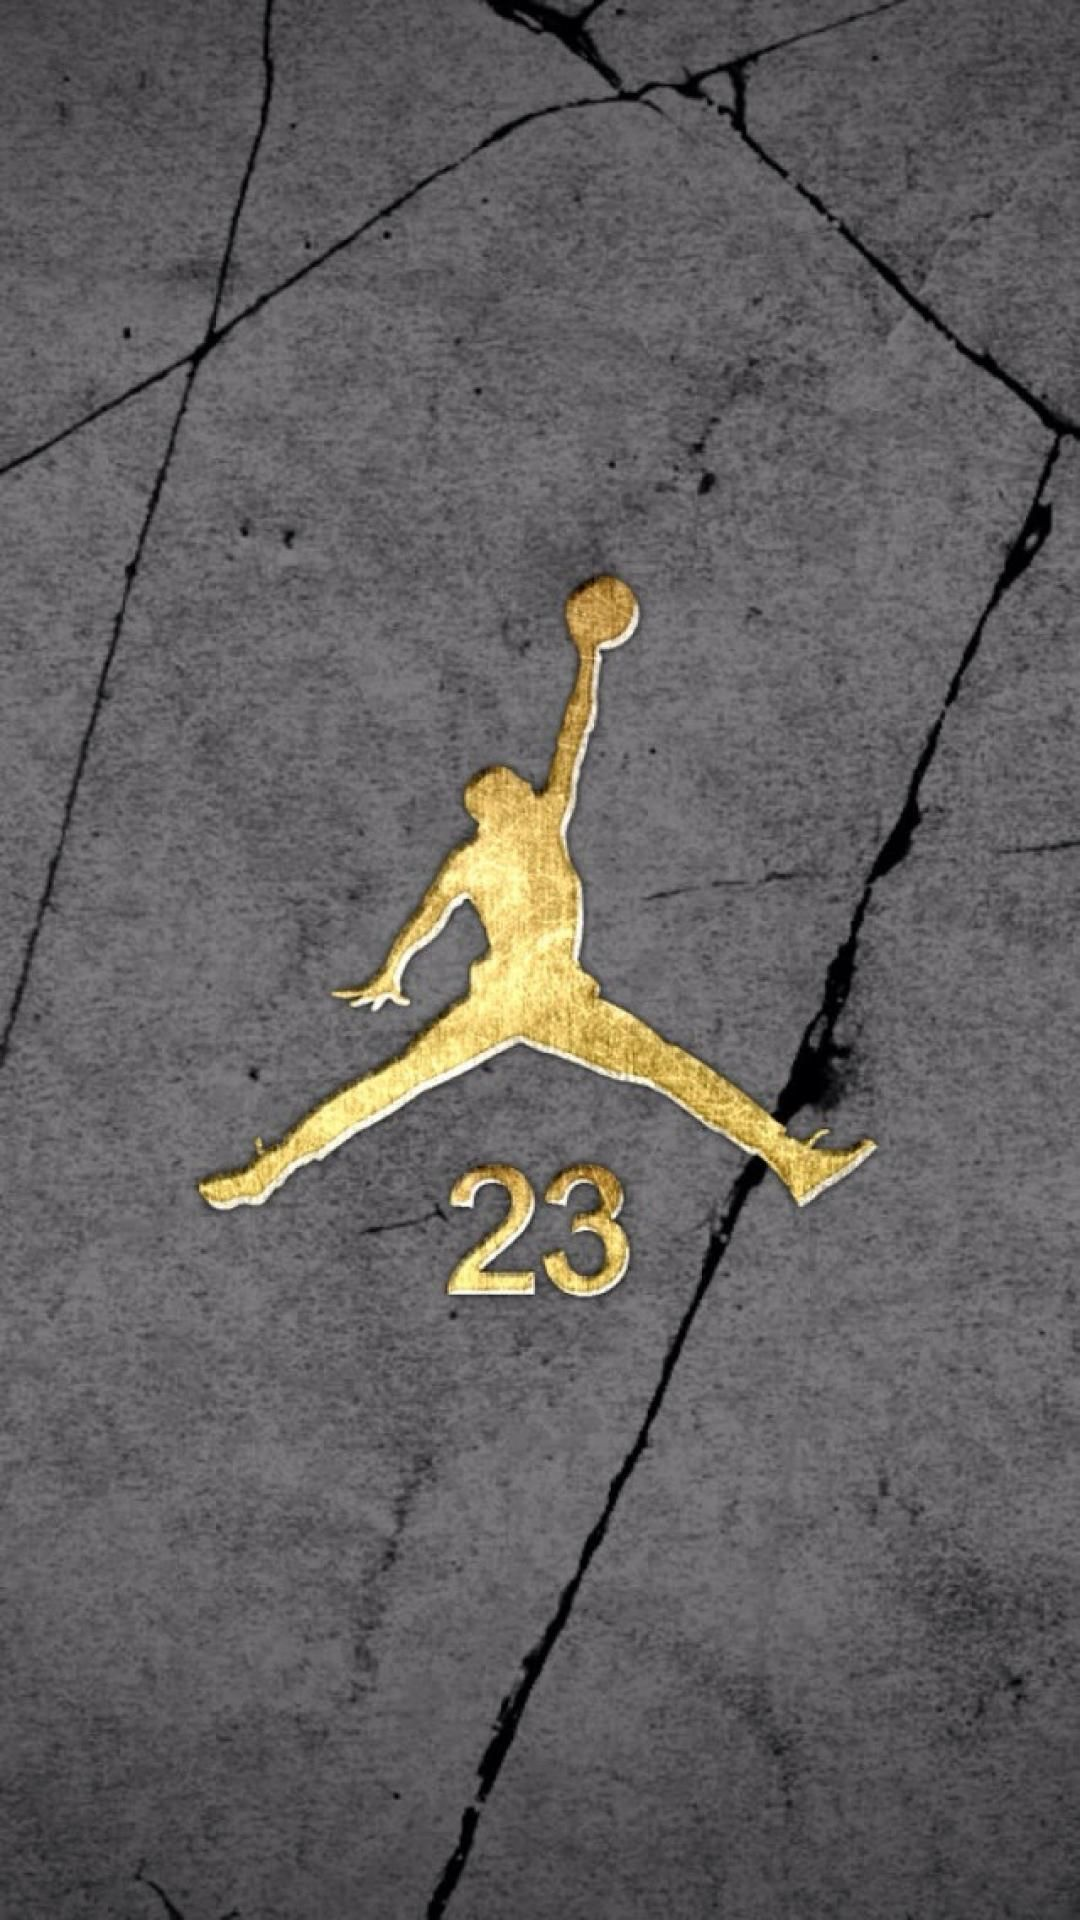 Wallpaper iphone jordan - Iphone 6 Retina Wallpaper